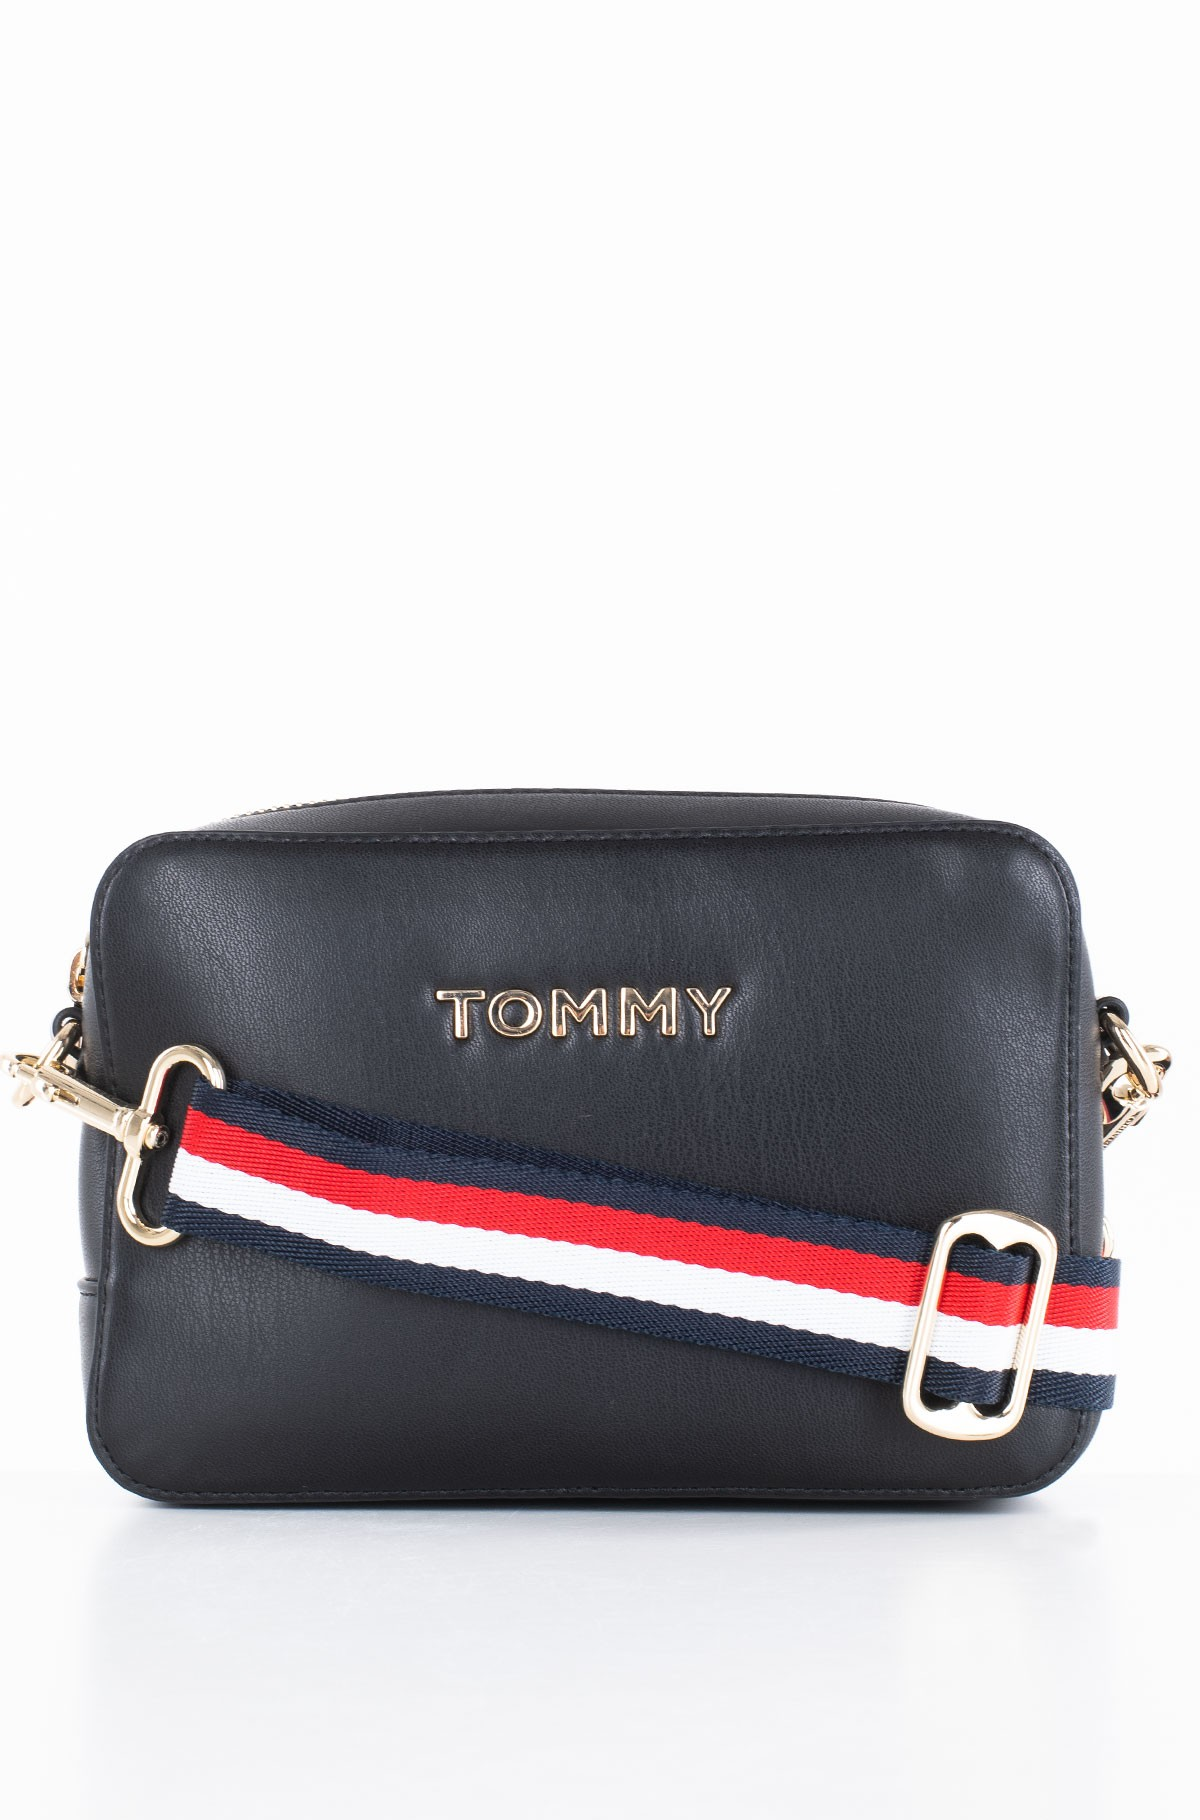 Rankinė per petį ICONIC TOMMY CROSSOVER SOLID-full-1